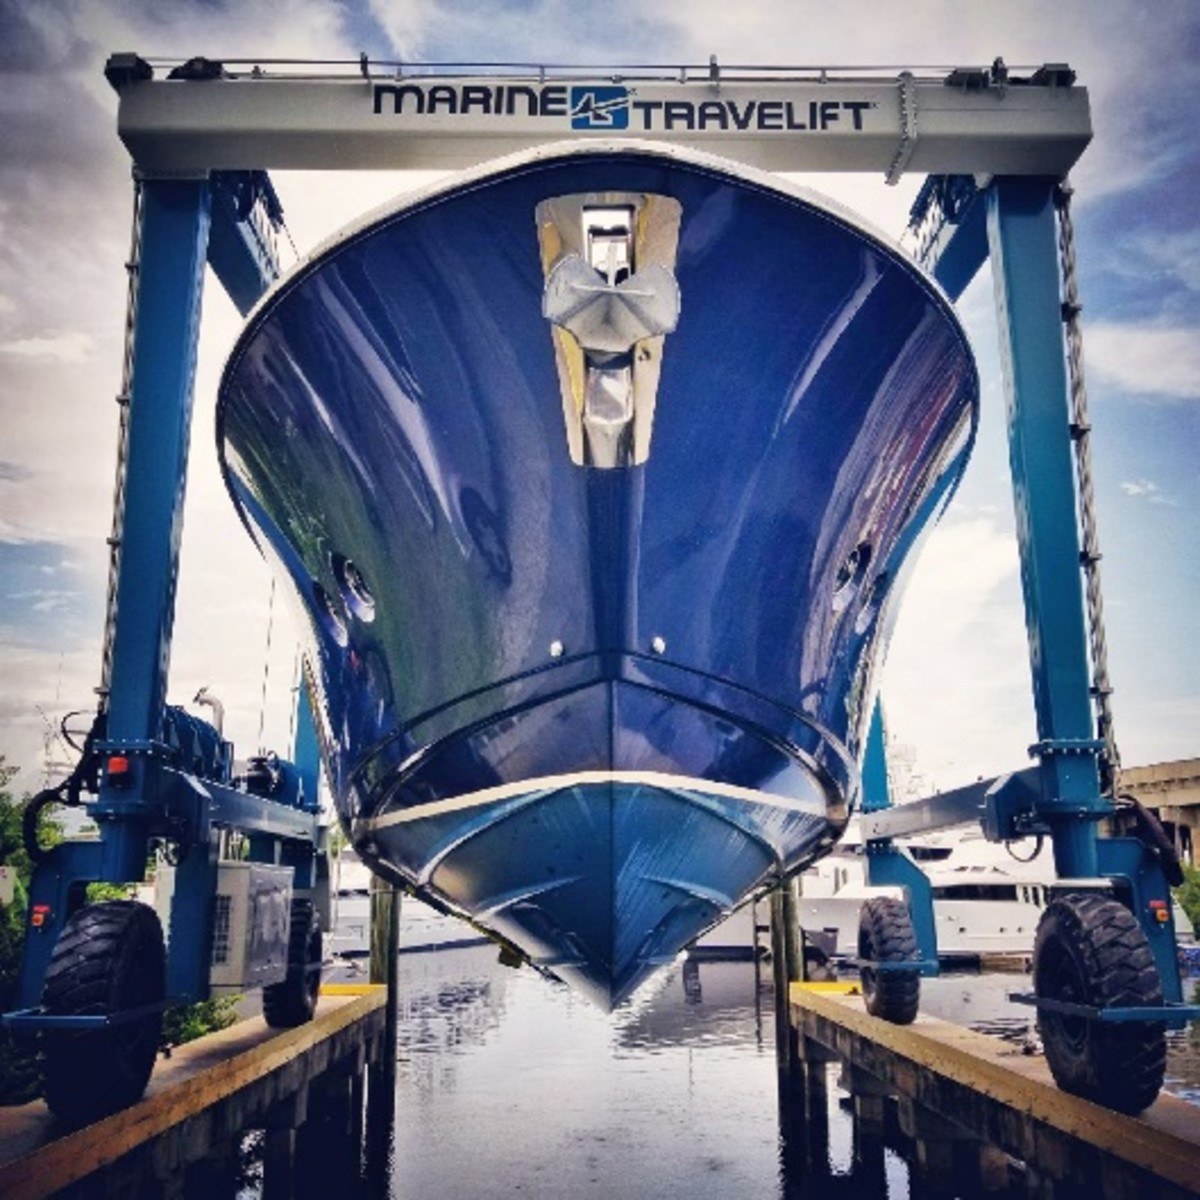 The new mobile boat hoist gives Marina Mile Yachting Center an extra 5 metric tons of lifting capacity.